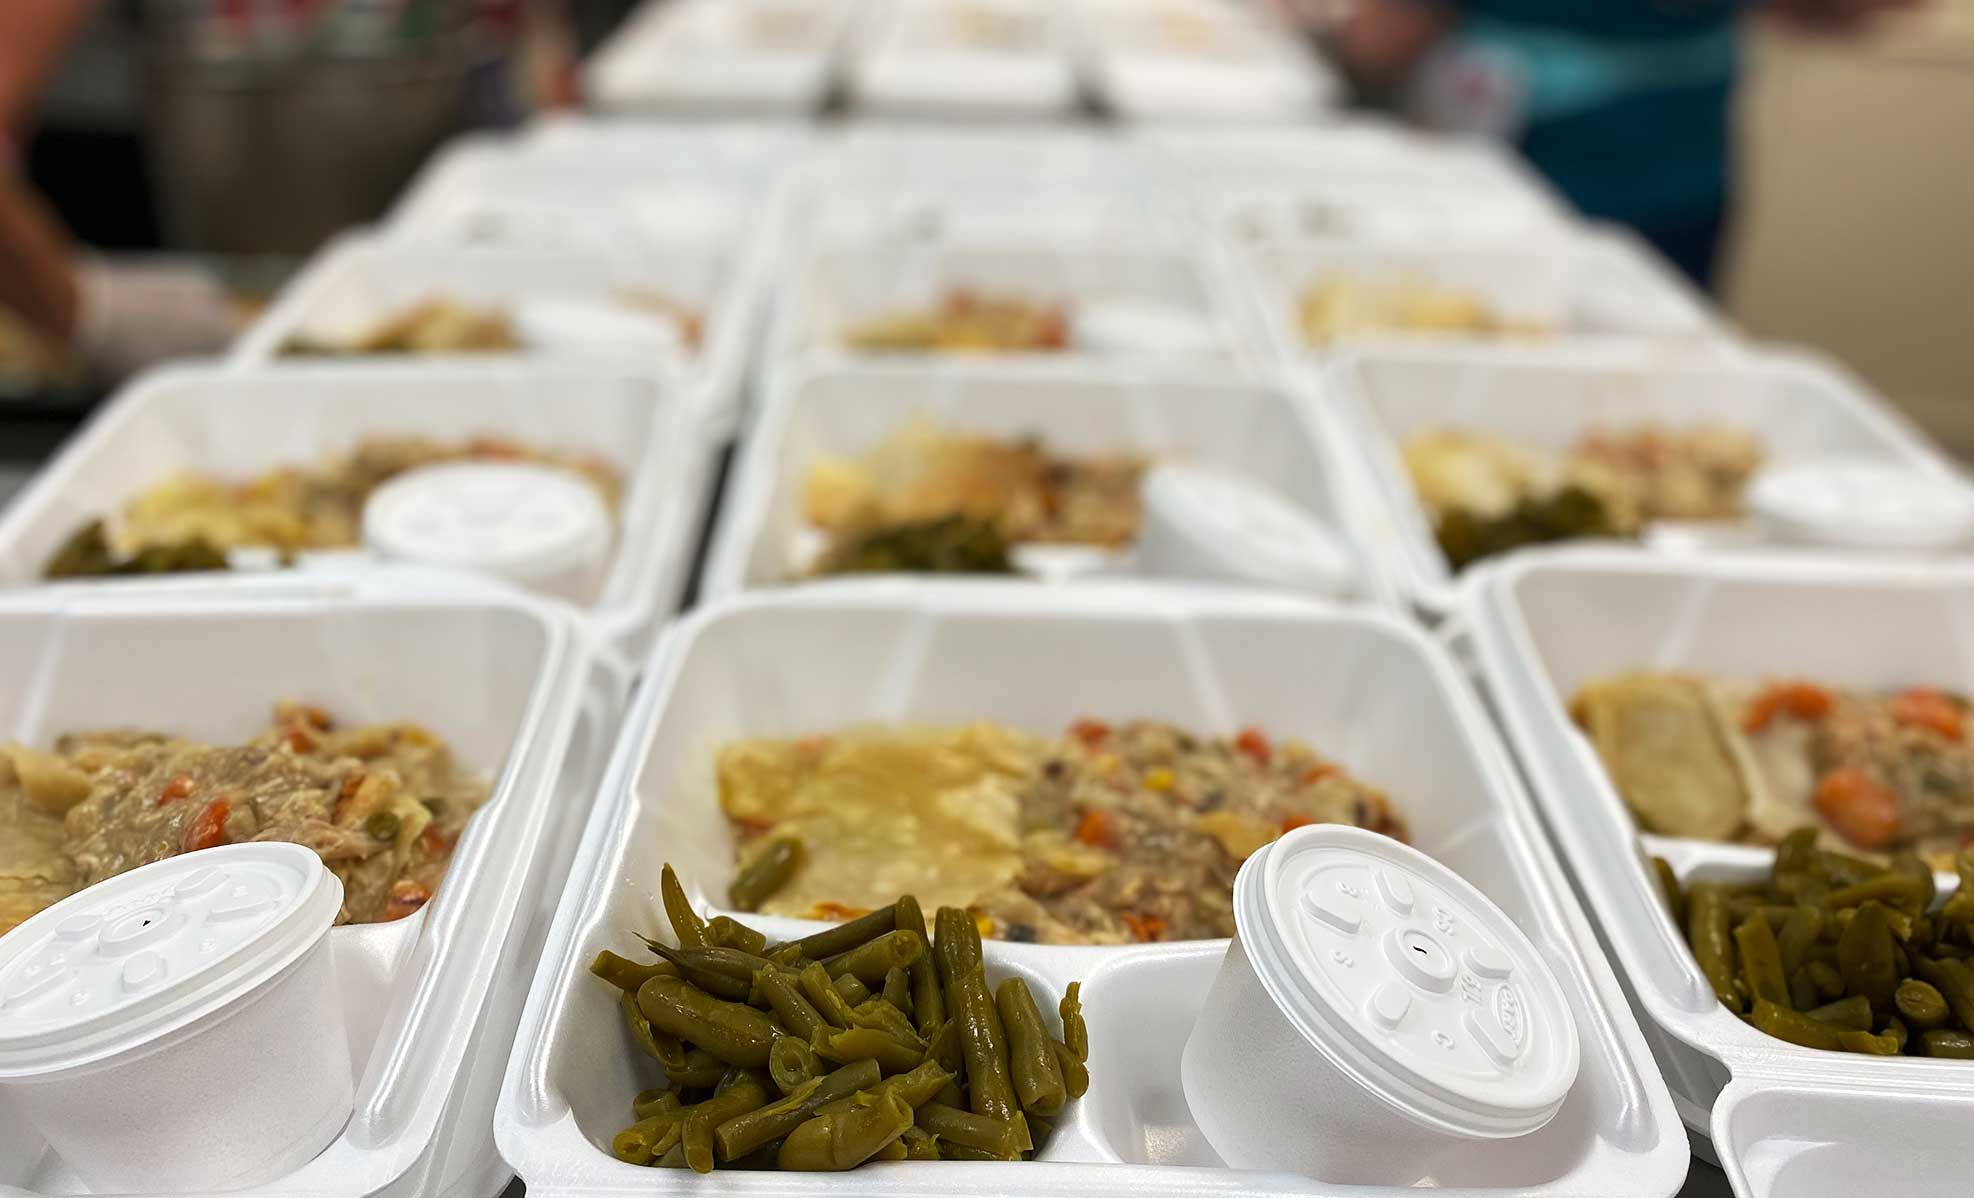 prepared meals ready for delivery